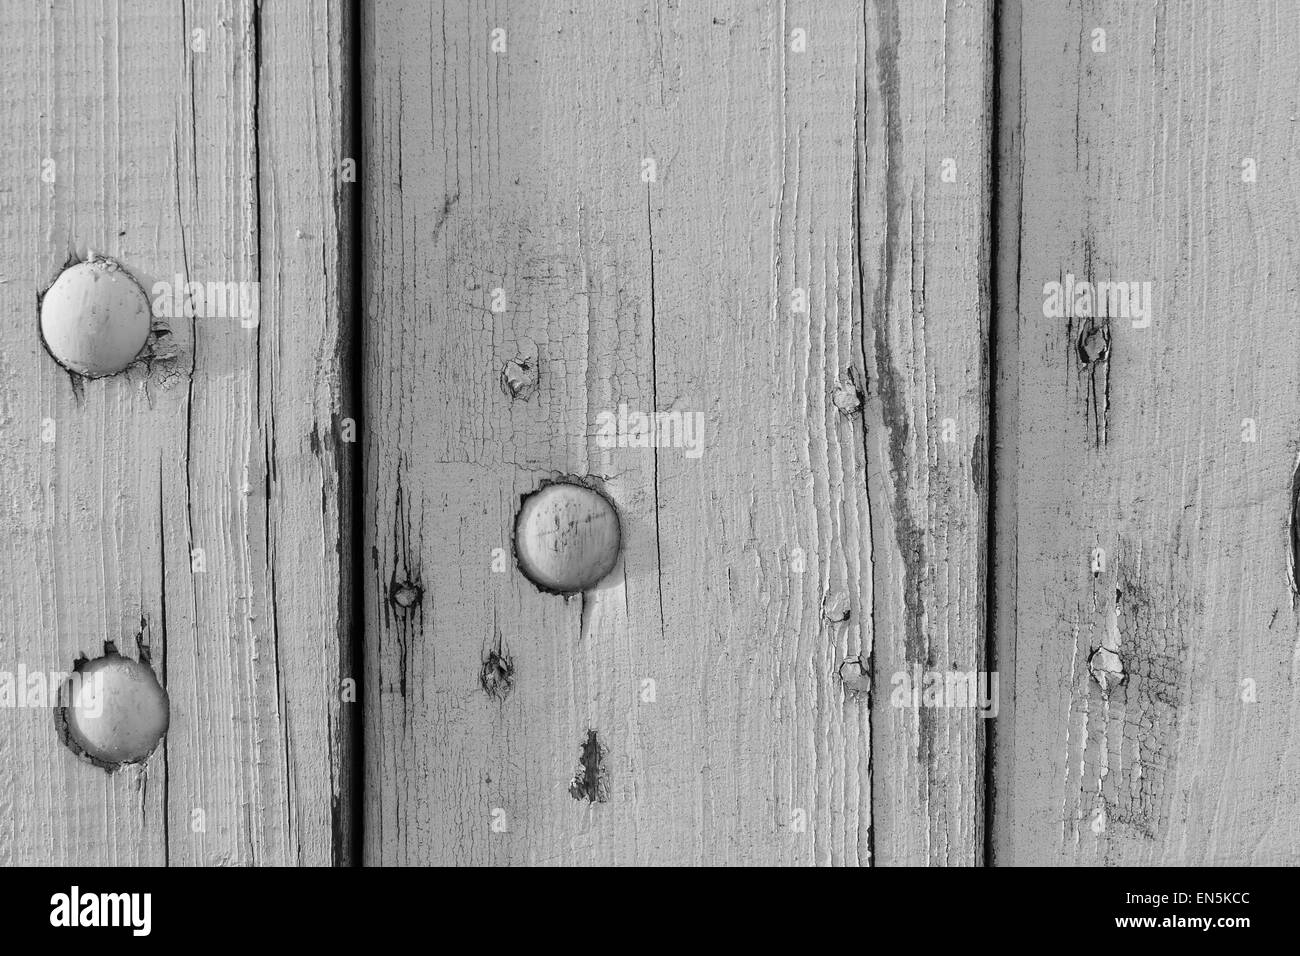 Alte Holzbretter Tischplatte Boden Oder Wand Holzstruktur Old Scratched Wooden Planks Texture Stockfotos And Old